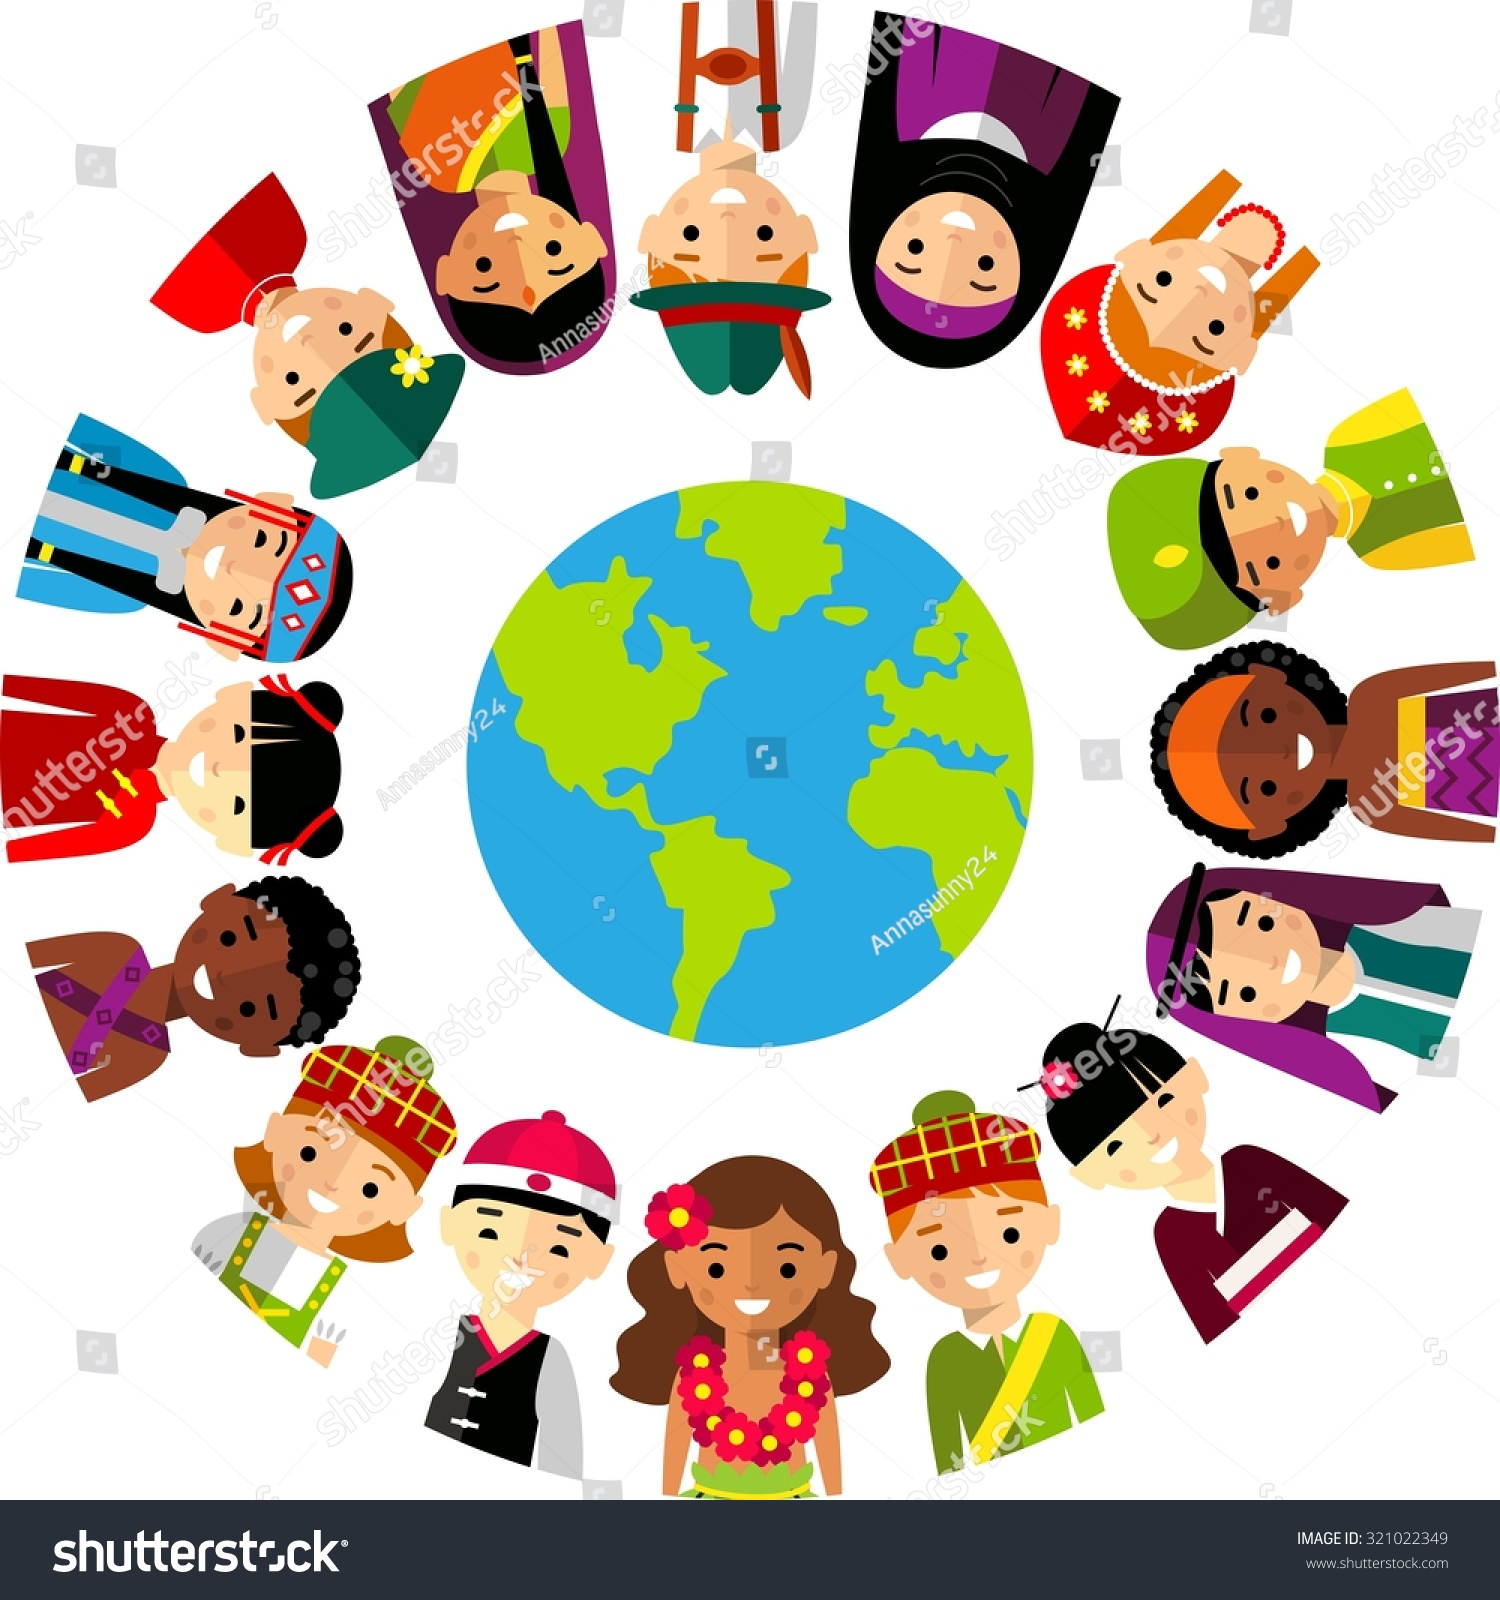 multiculturalism and official culture Multiculturalism is a word that describes a society where many different cultures live together in a multicultural society, there is not an official (decided by the people in charge) culture that every person must be a part of.